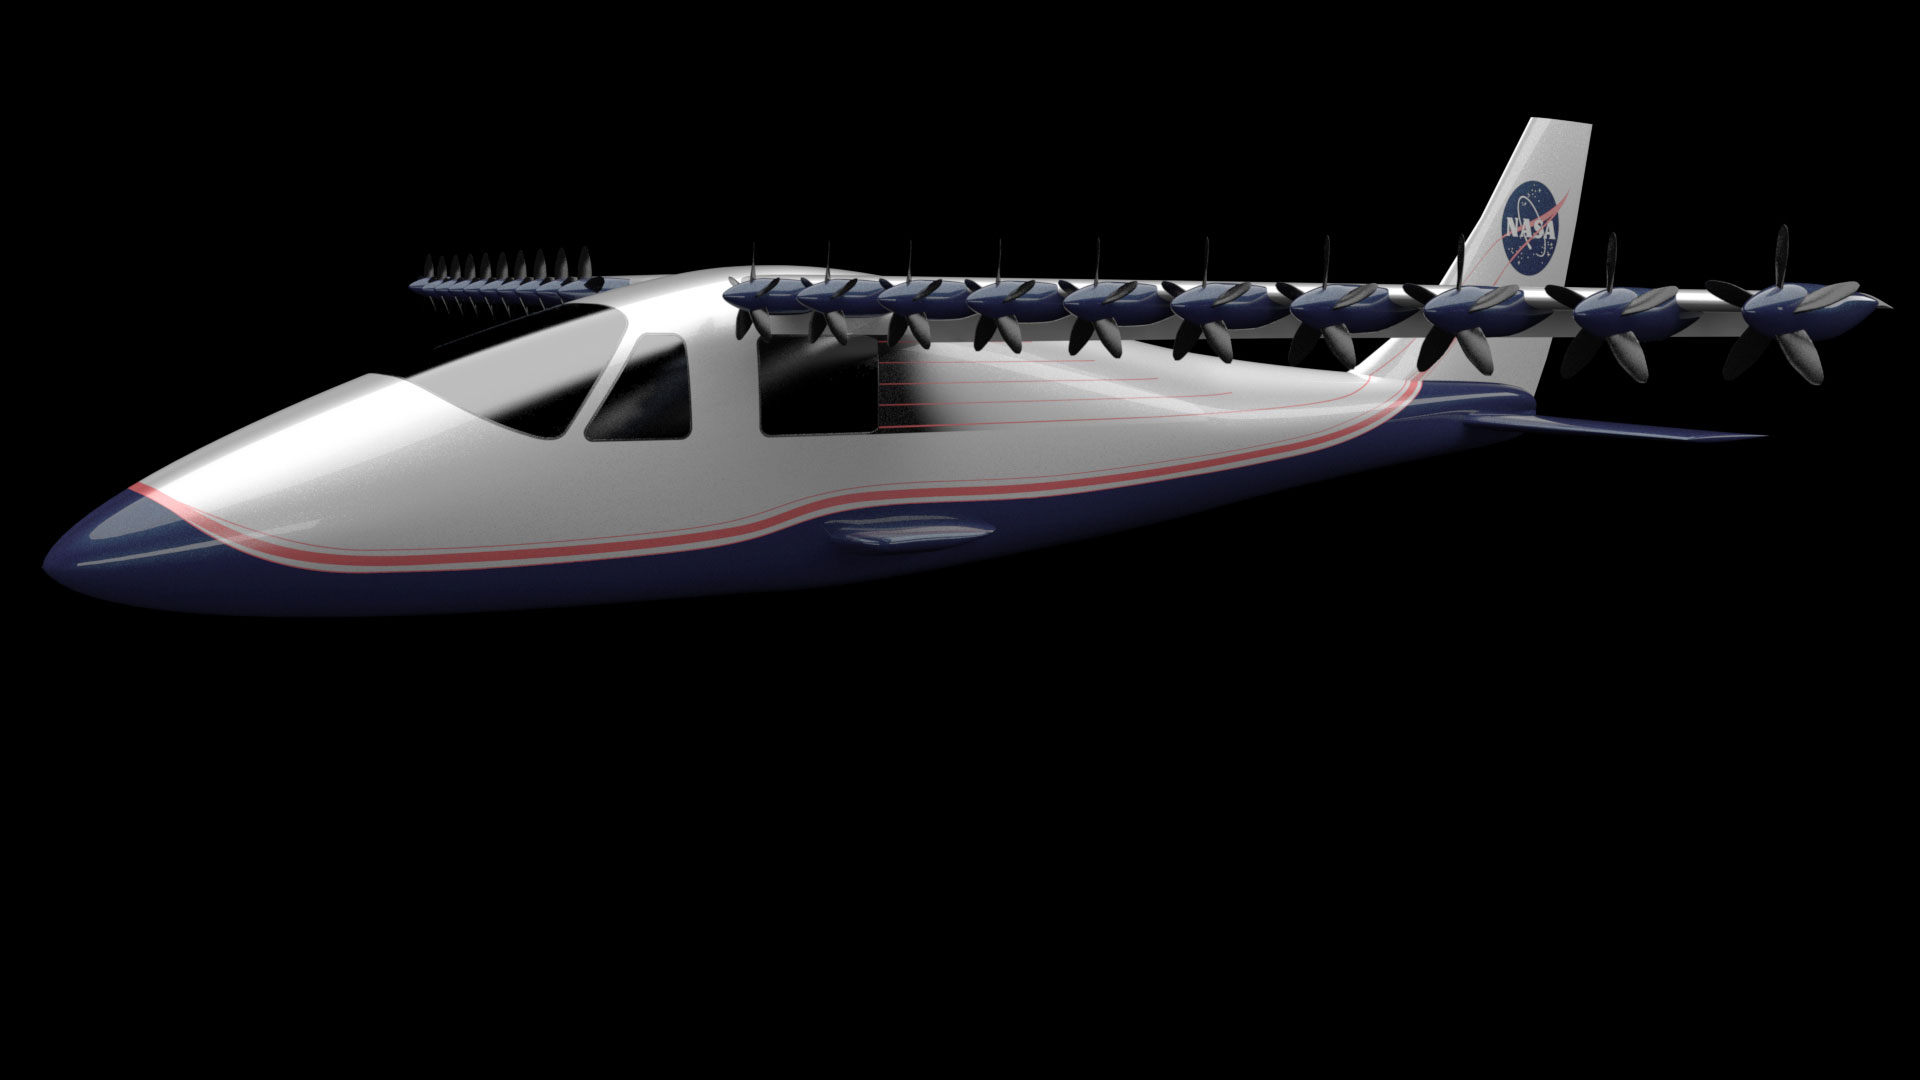 With the recent advances in technology and design aircraft concepts - Electric Propulsion And Digital Control May Usher In A New Era Of Flight